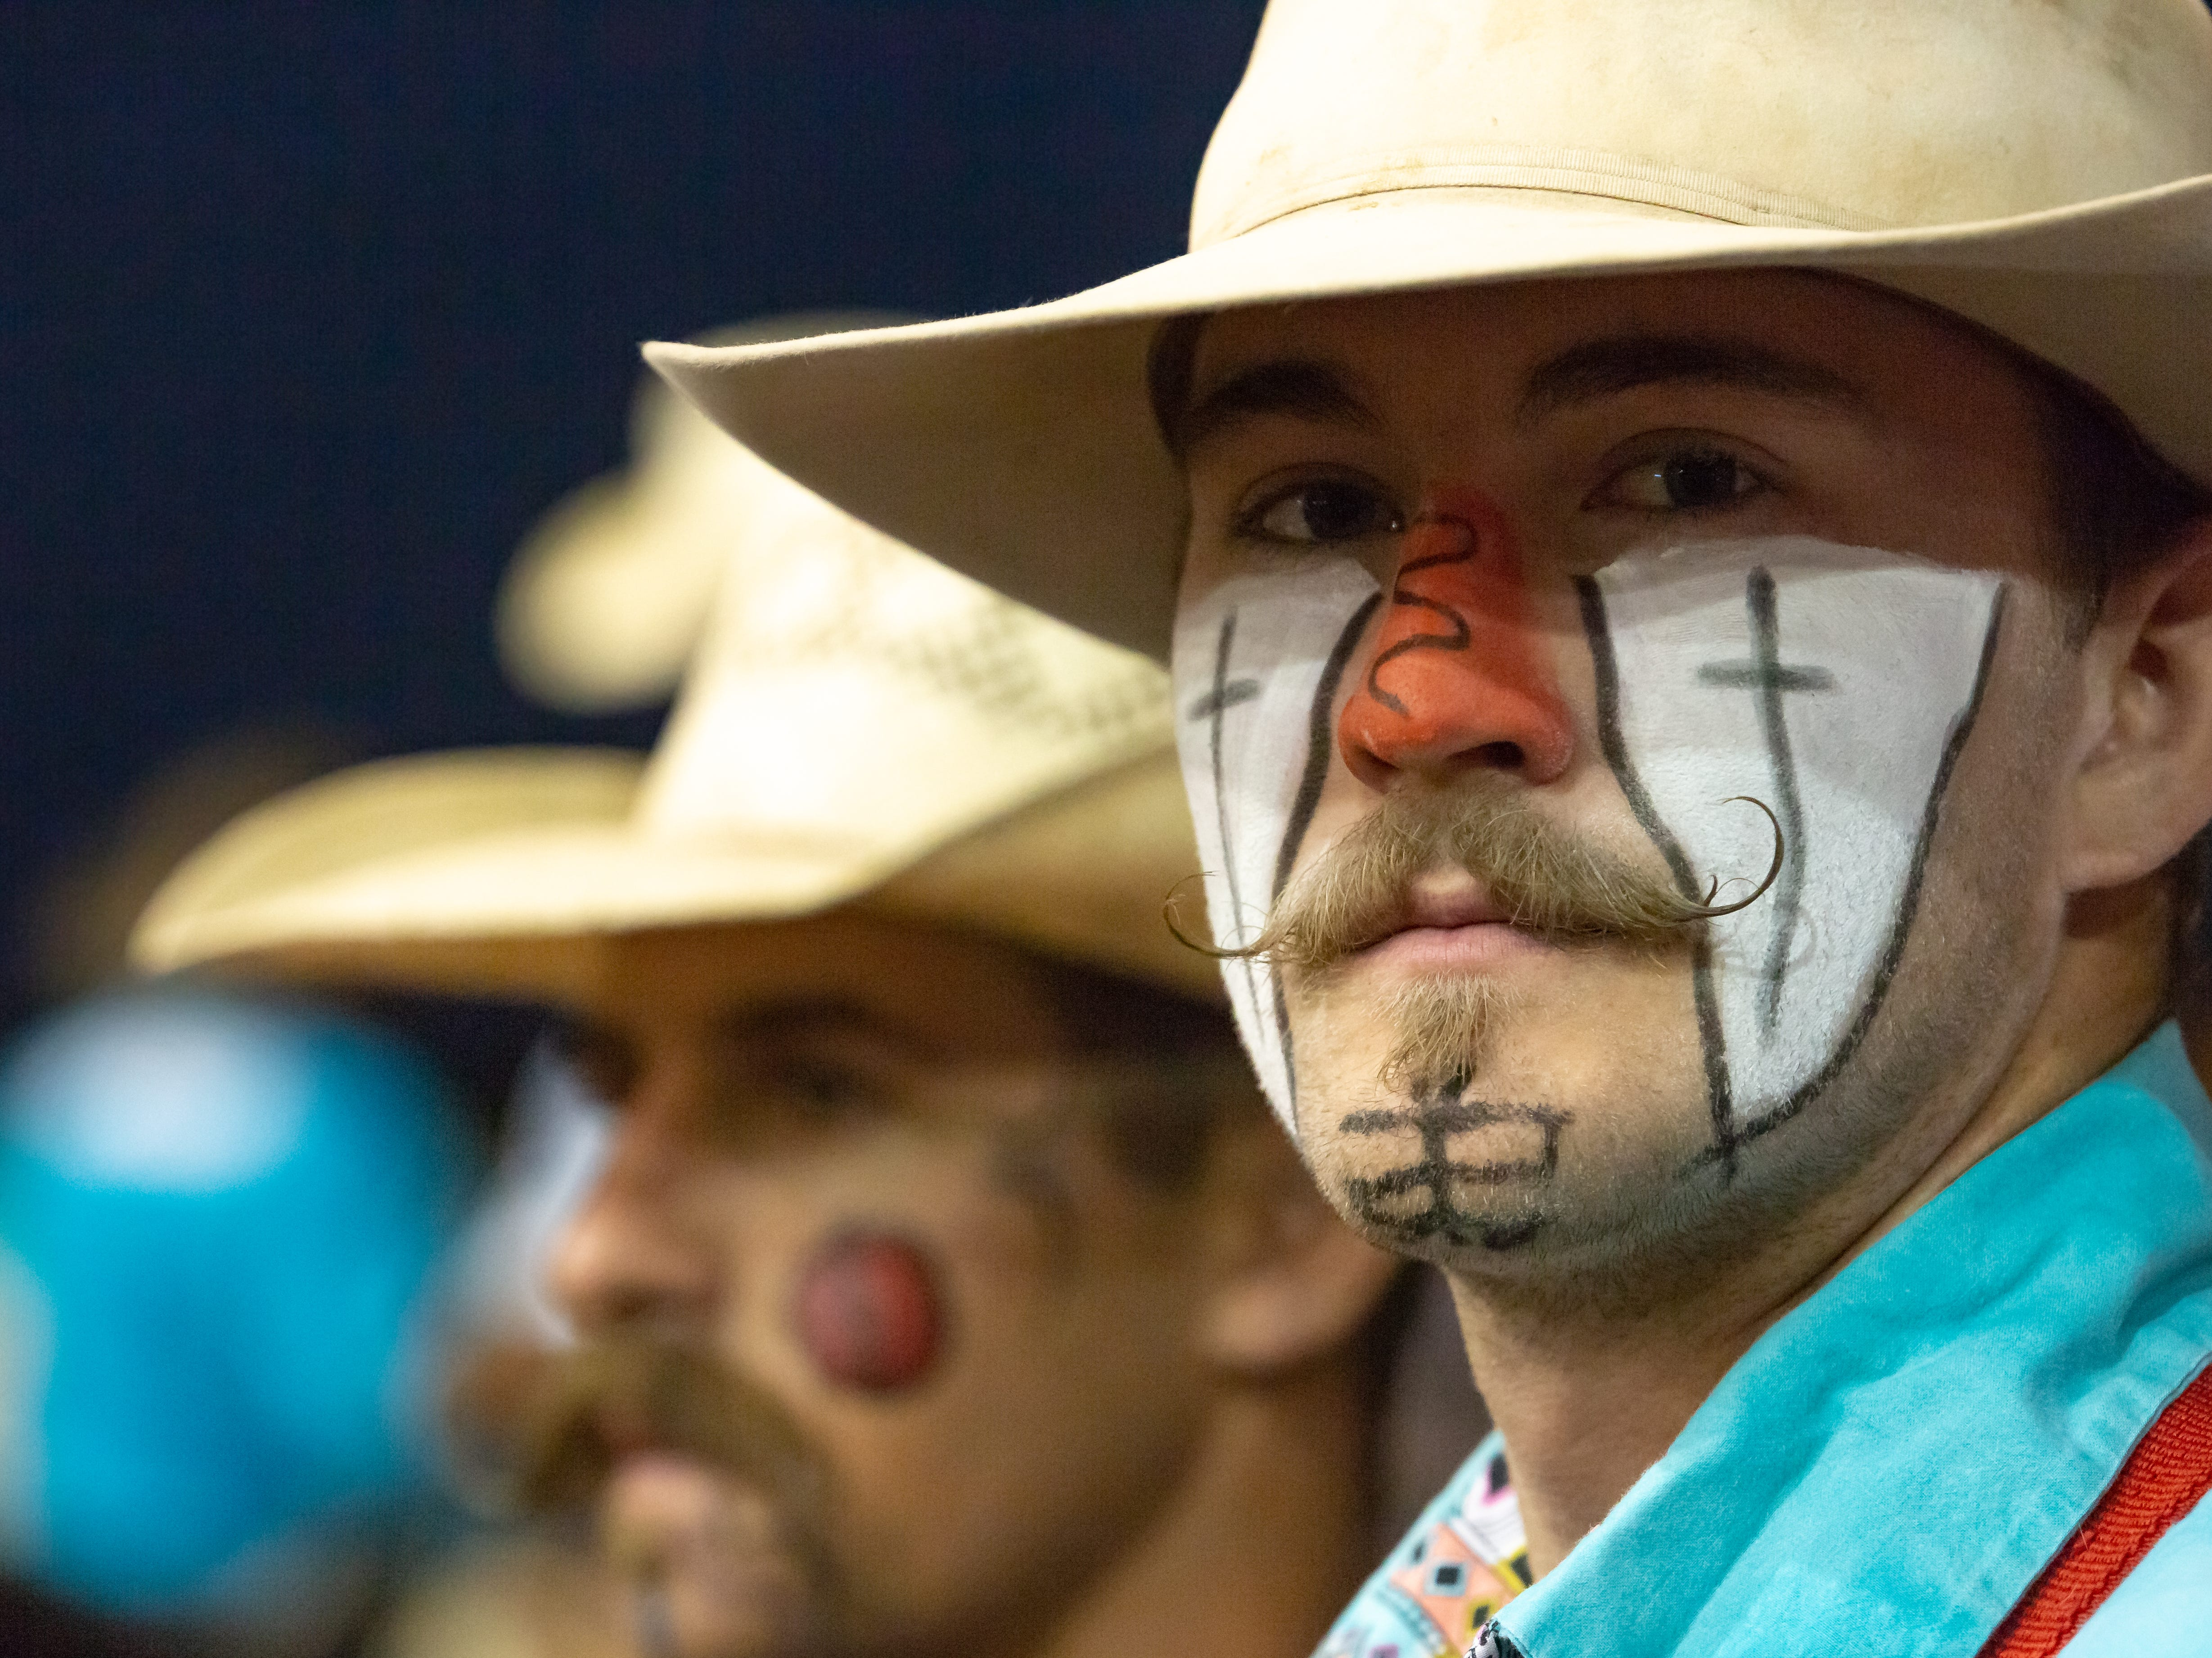 Professional bull fighter Ethan Johnson, of Corona, New Mexico, is pictured with his face painted in the Pete V. Domenici Arena on Saturday, Sept. 29, 2018, during the Southern New Mexico State Fair & Rodeo at the Southern New Mexico State Fairgrounds.